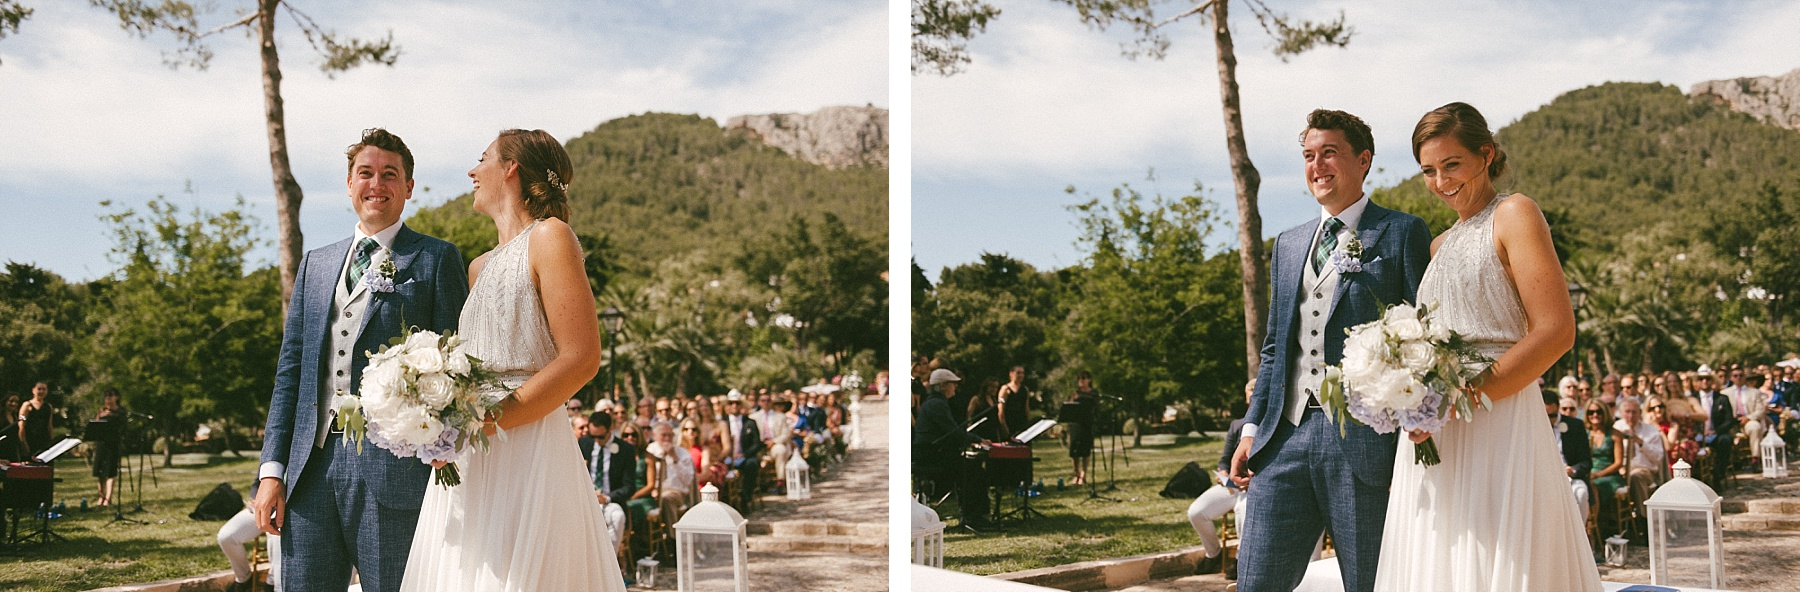 Formentor wedding